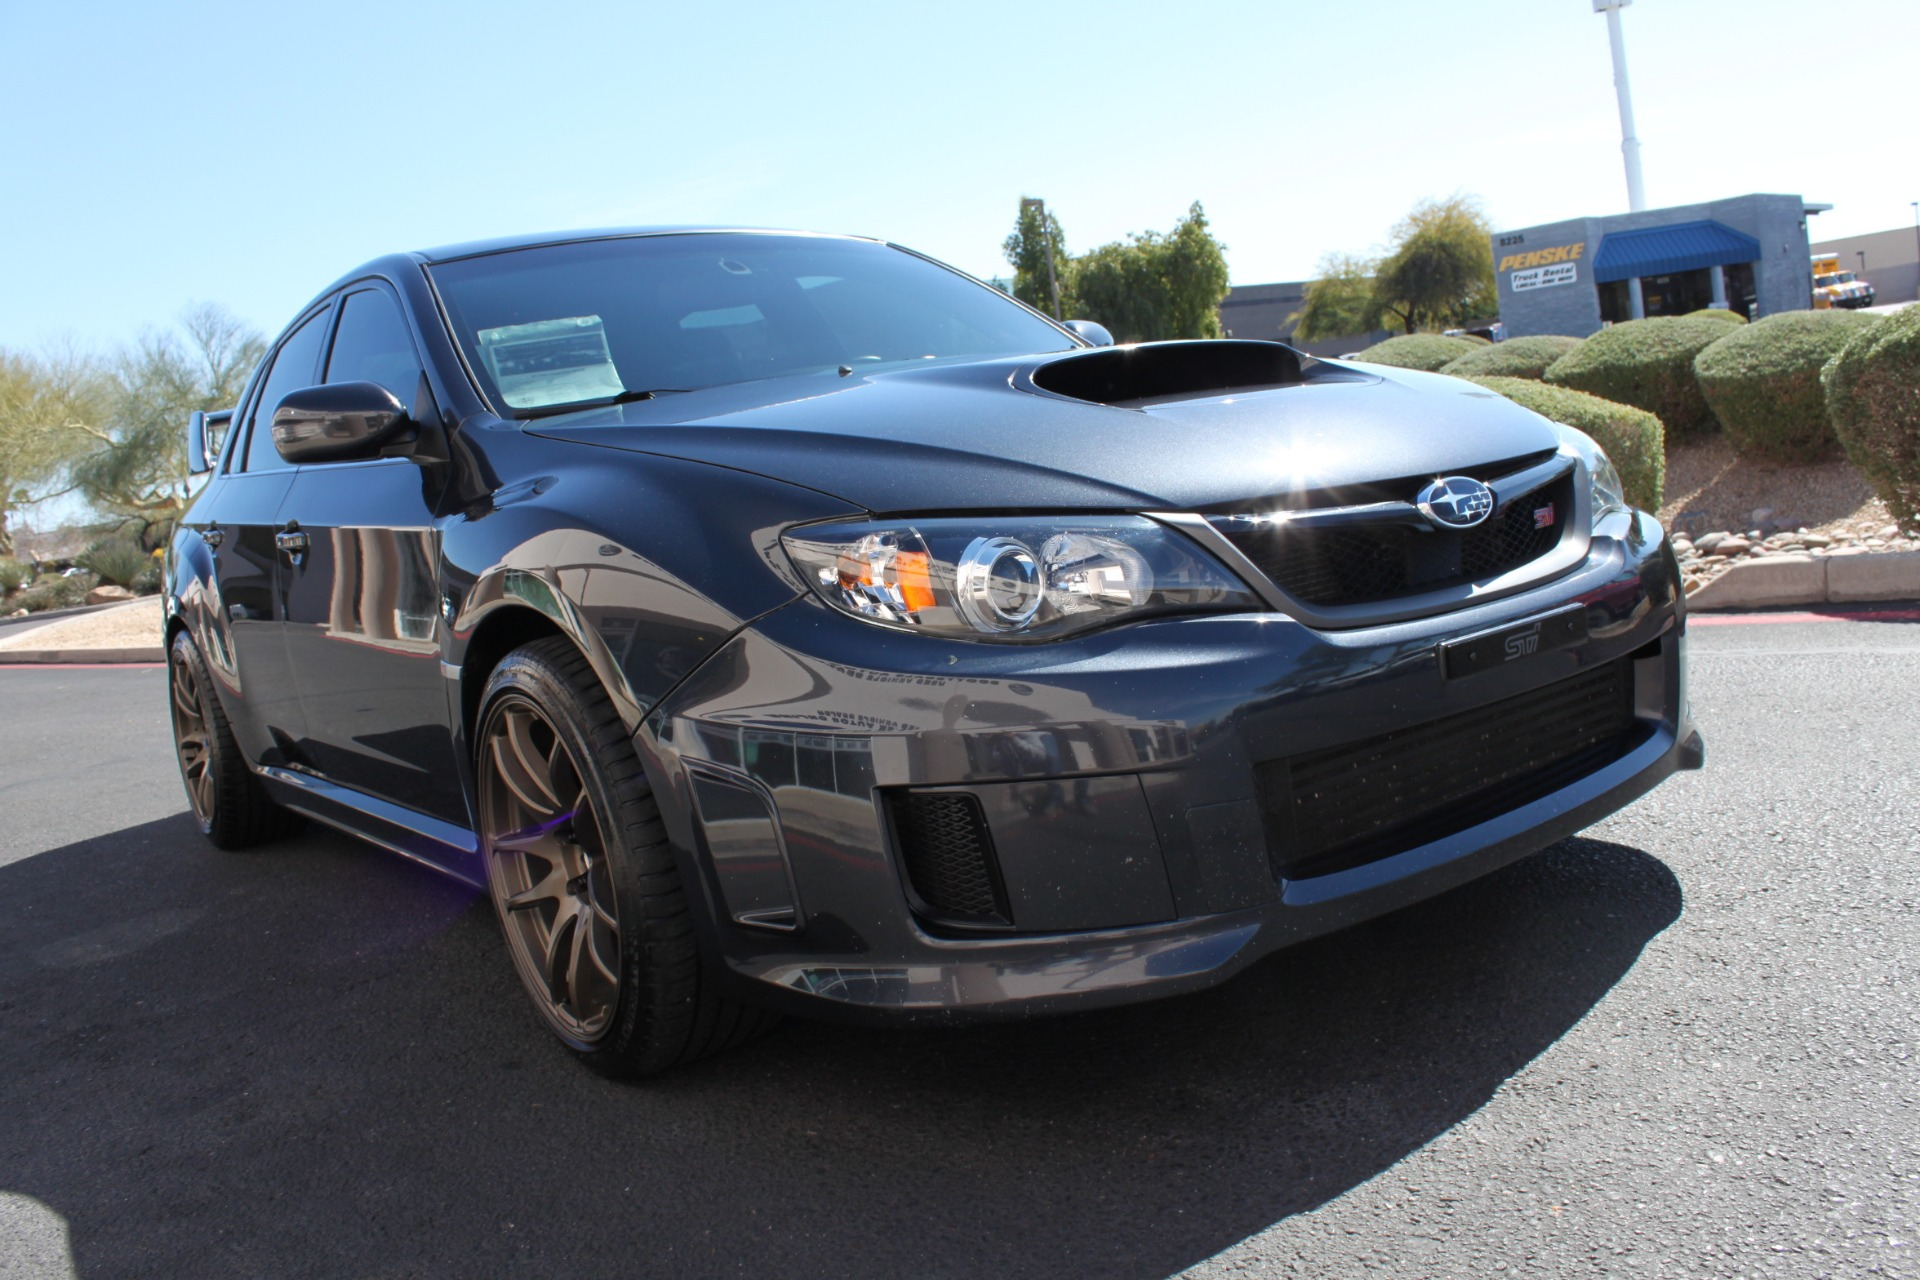 Used-2011-Subaru-Impreza-Sedan-WRX-STI-Mercedes-Benz